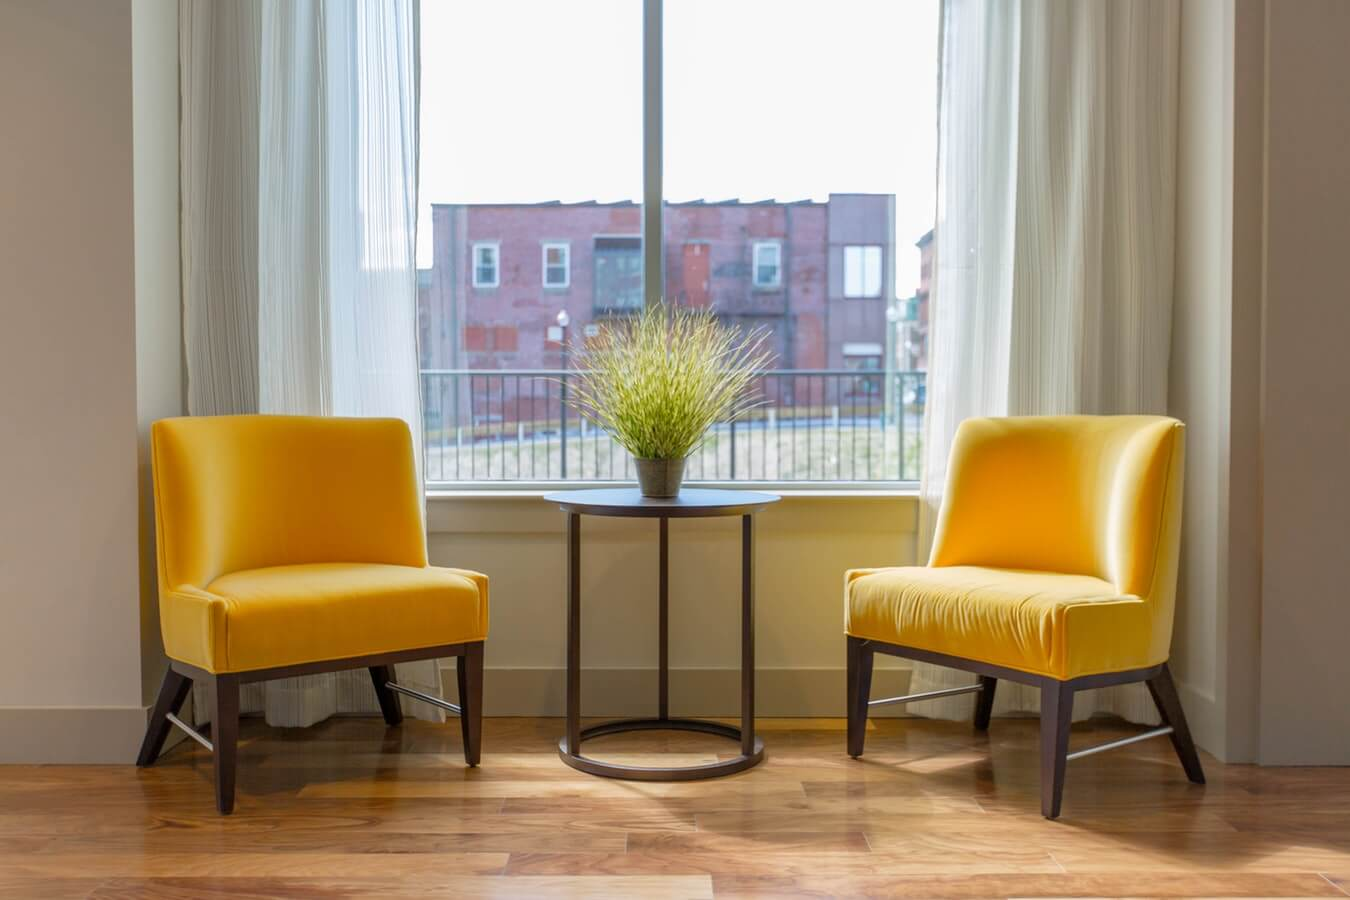 Chairs in front of a window